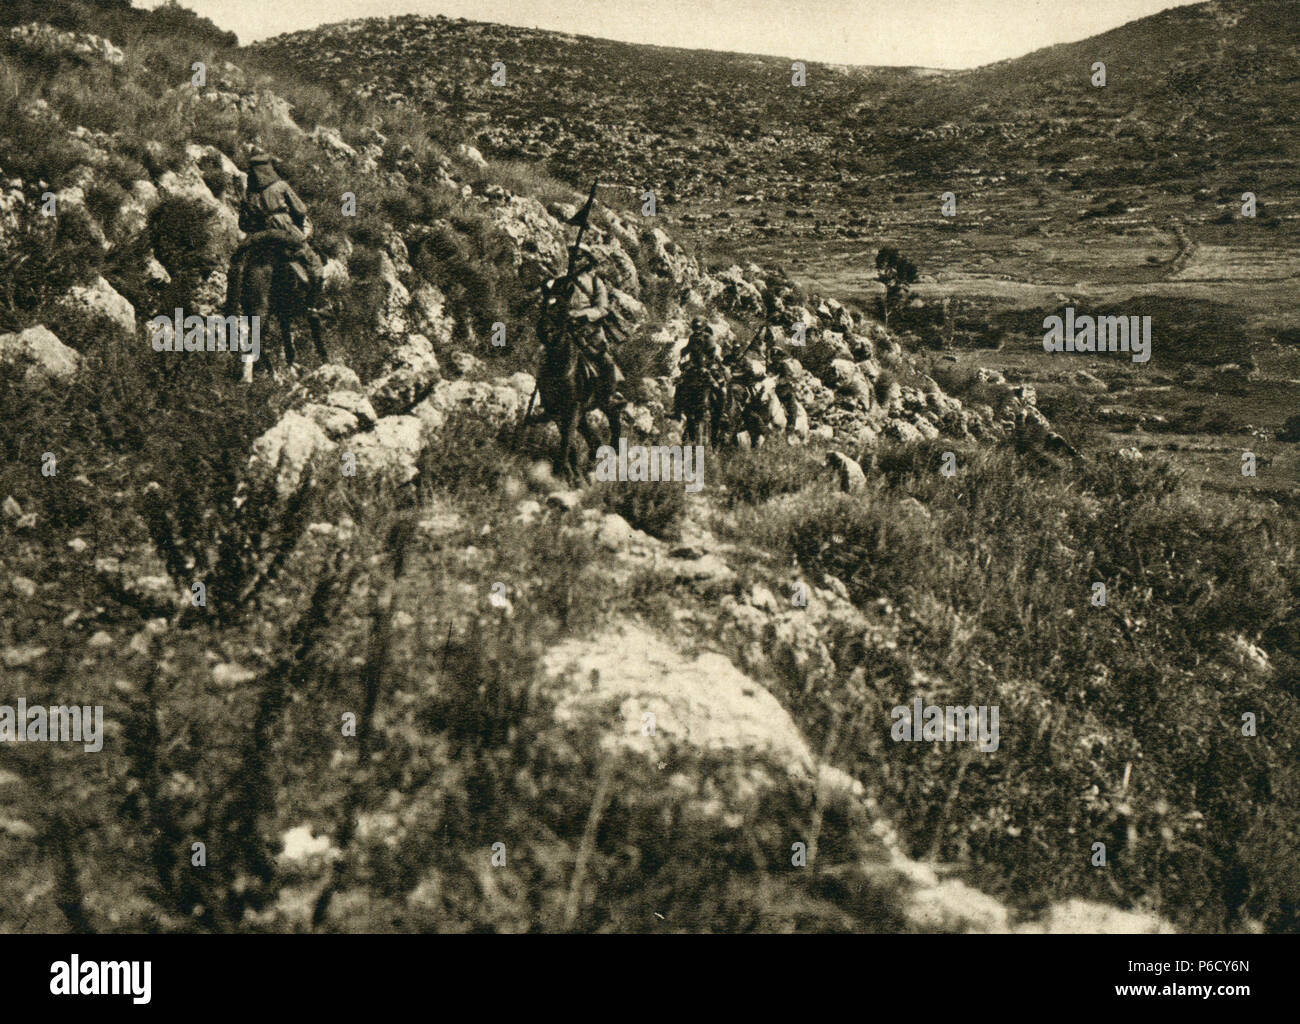 palestine, cavalry, German soldiers, ww1, wwi, world war one - Stock Image